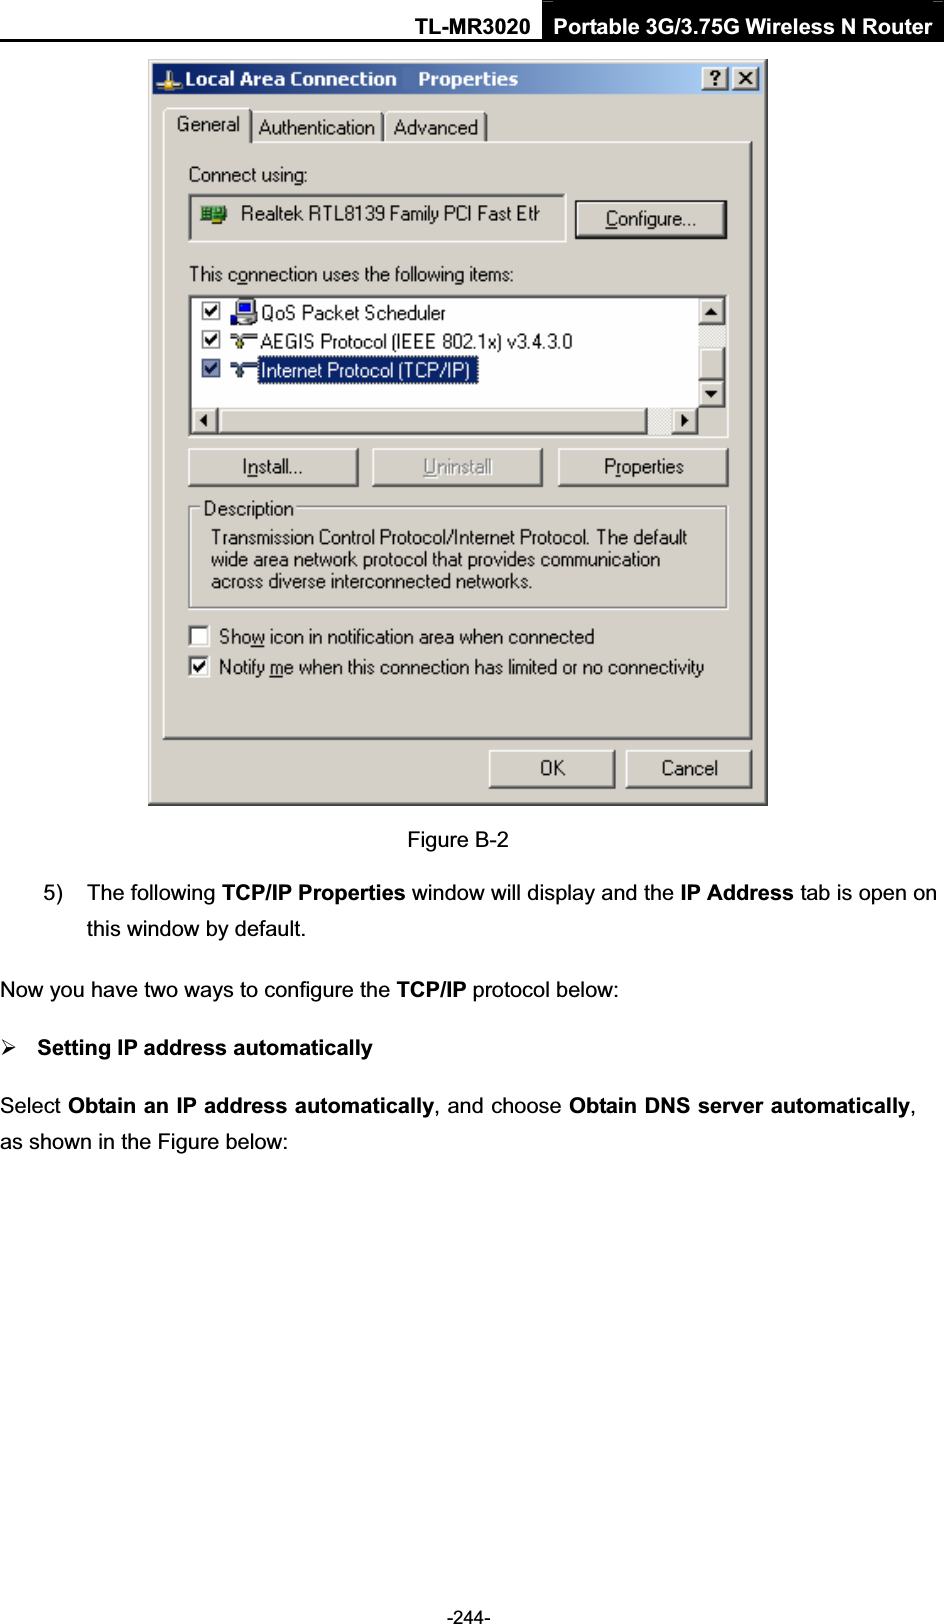 D-LINK RTL8139 A B C DRIVERS FOR WINDOWS 10